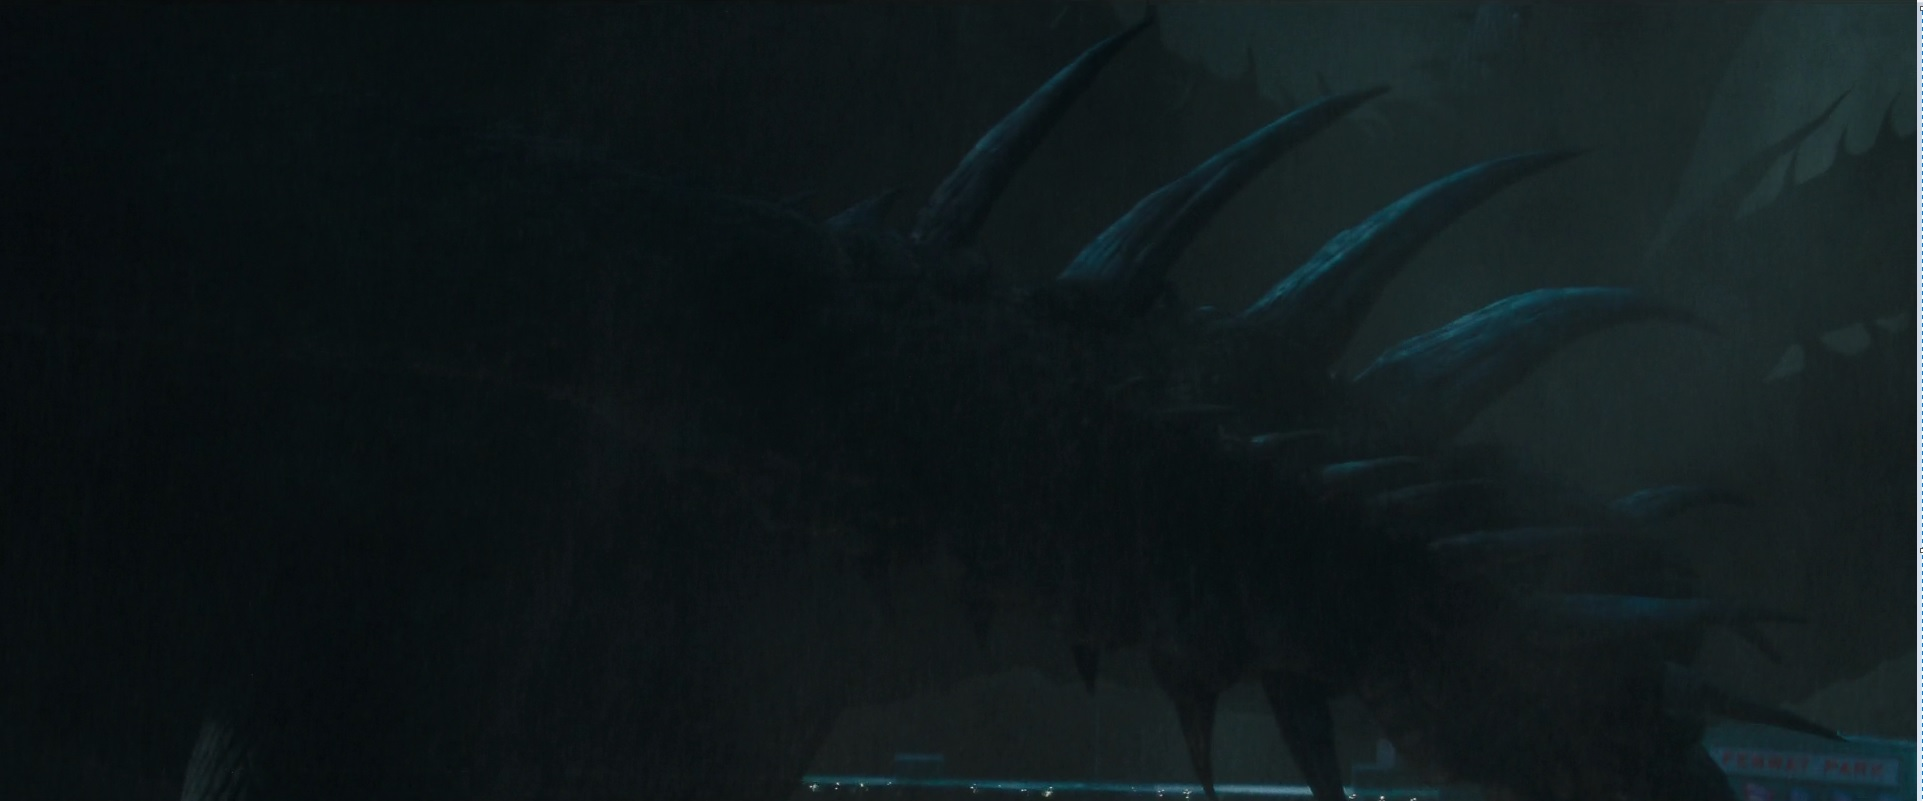 16 Ghidorah's Big ol spikey tail.jpg